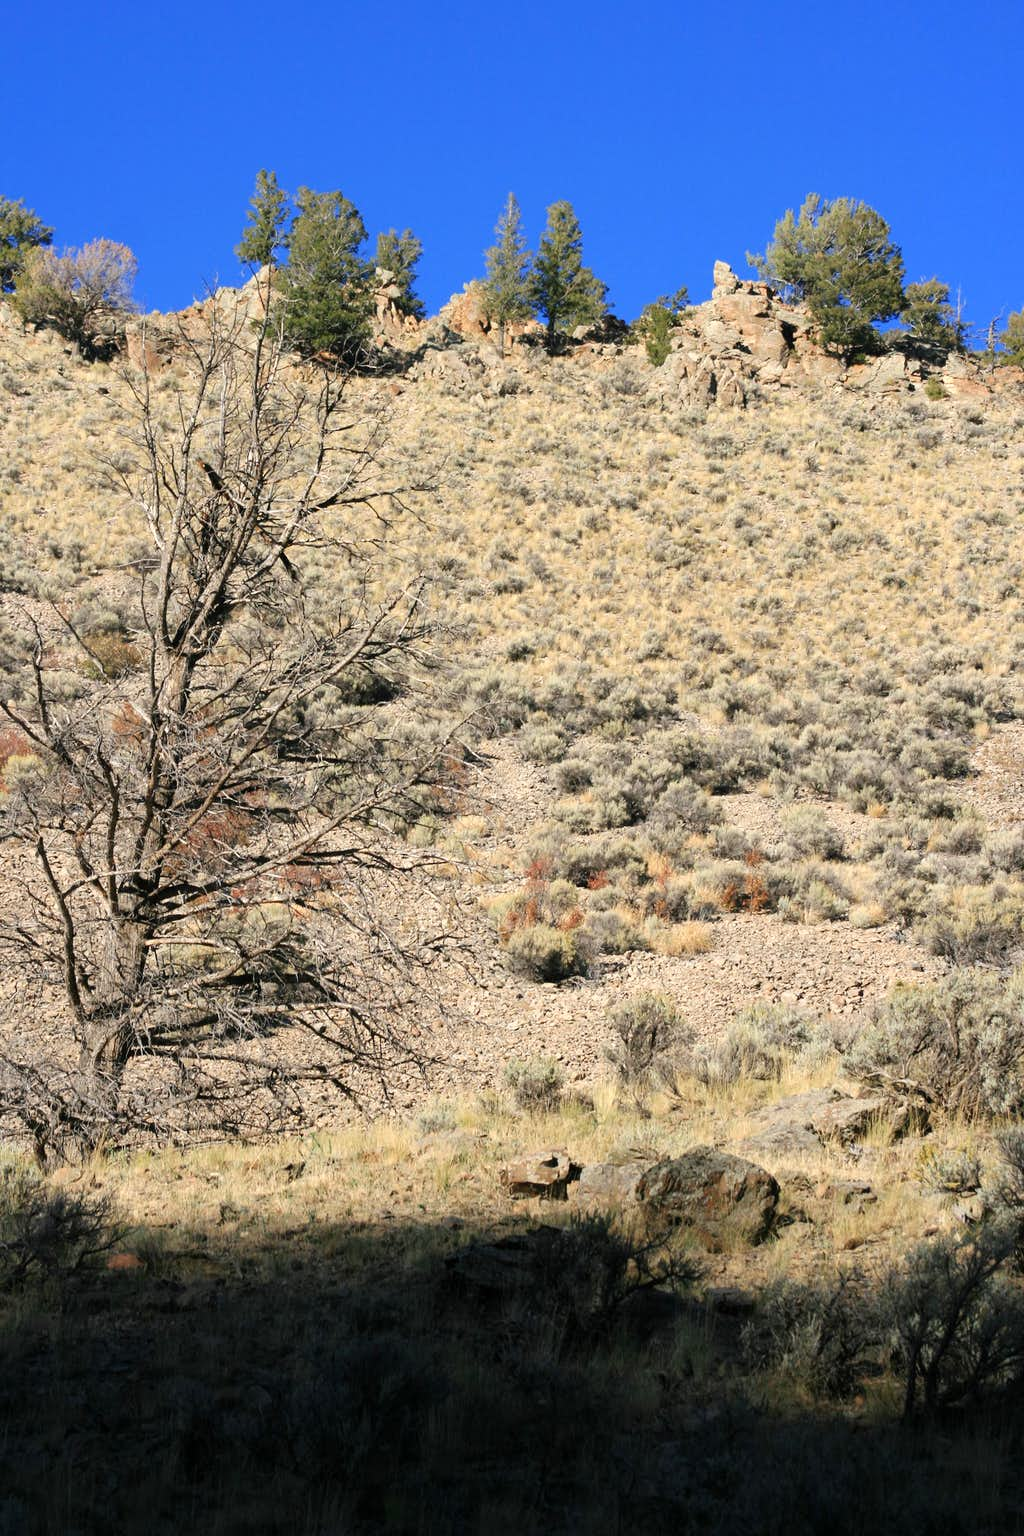 A possible scramble up Rattlesnake Butte